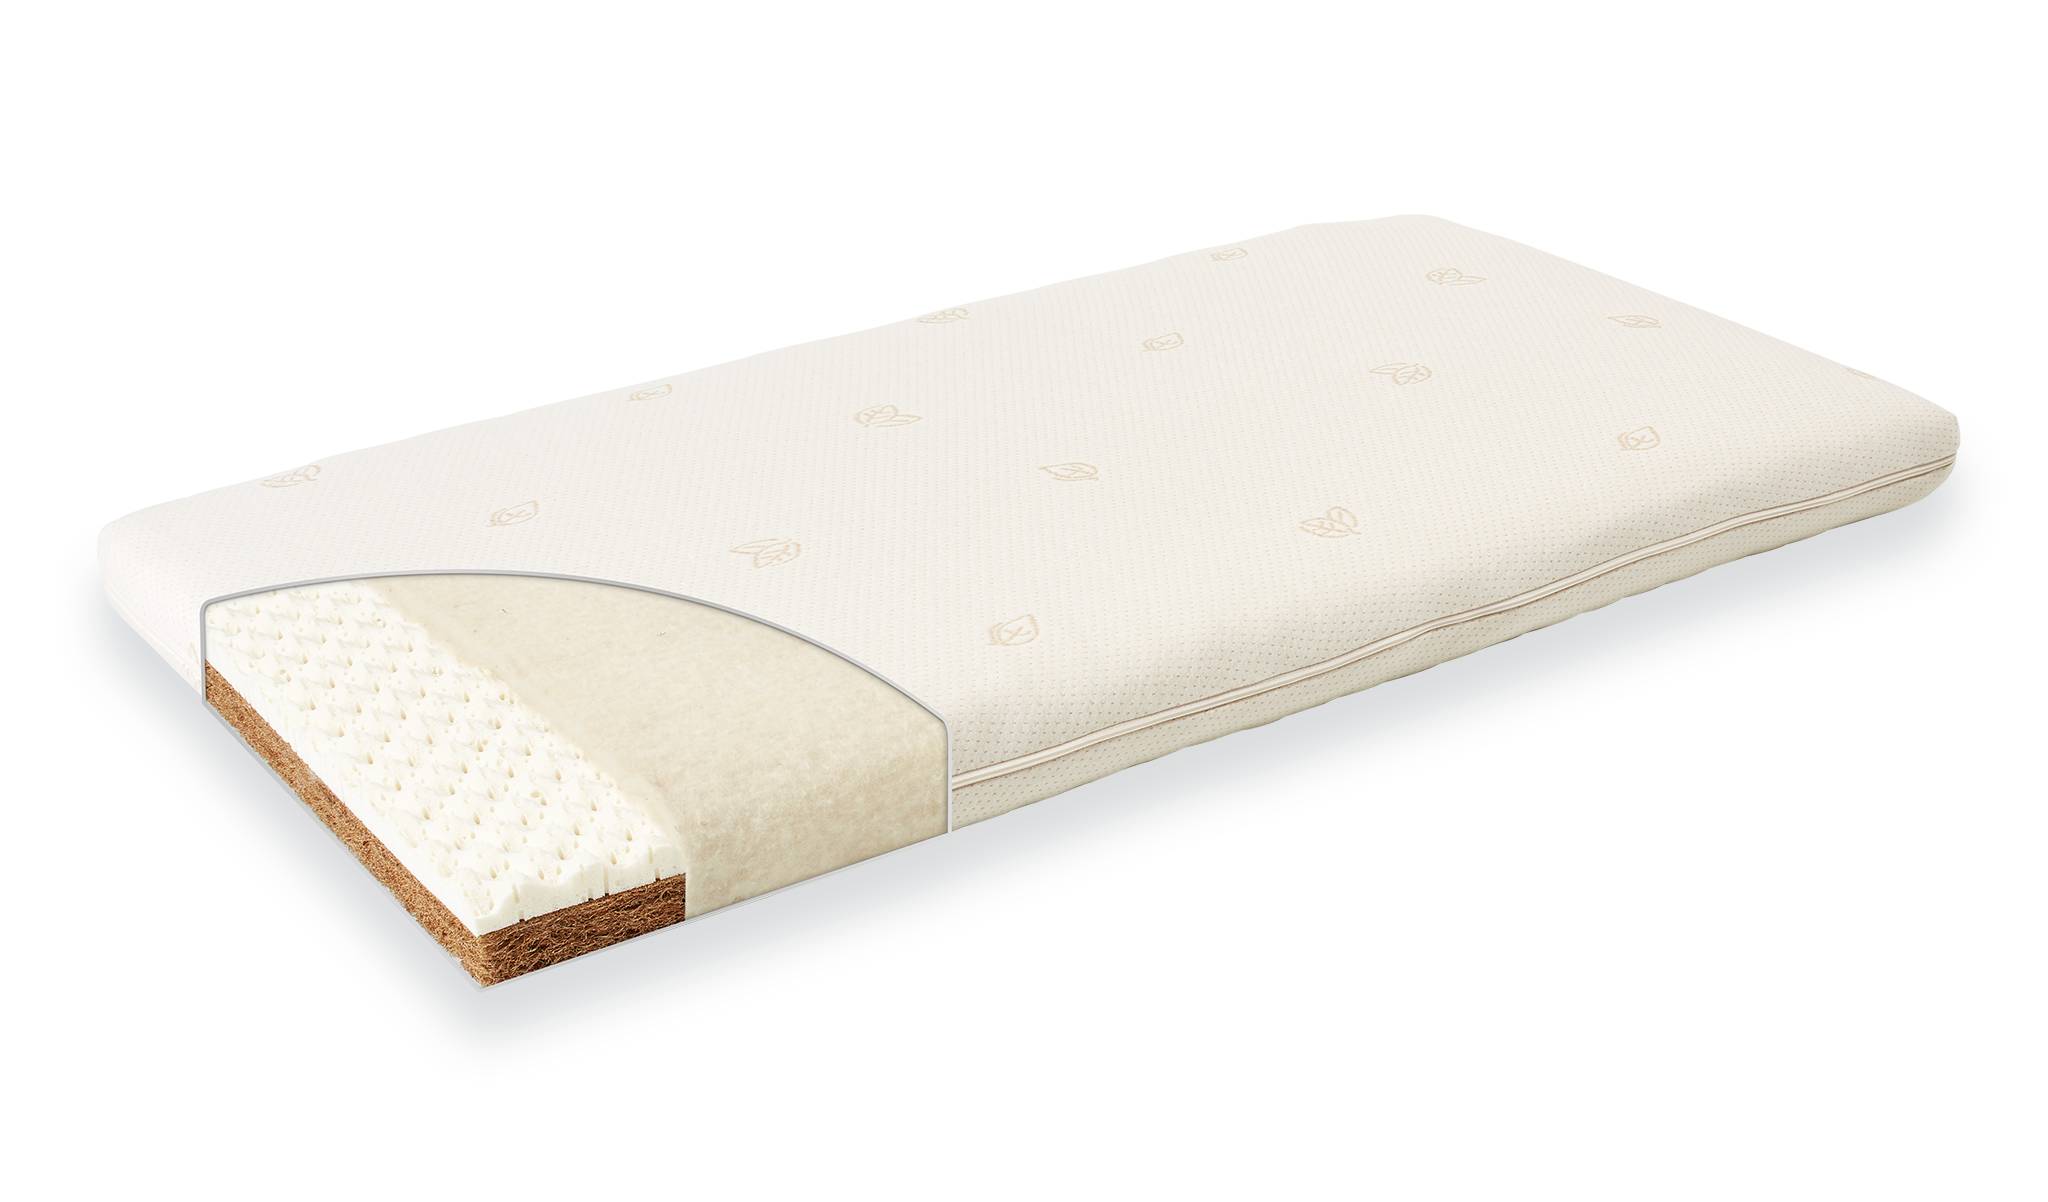 T010132 - mattress nature luck